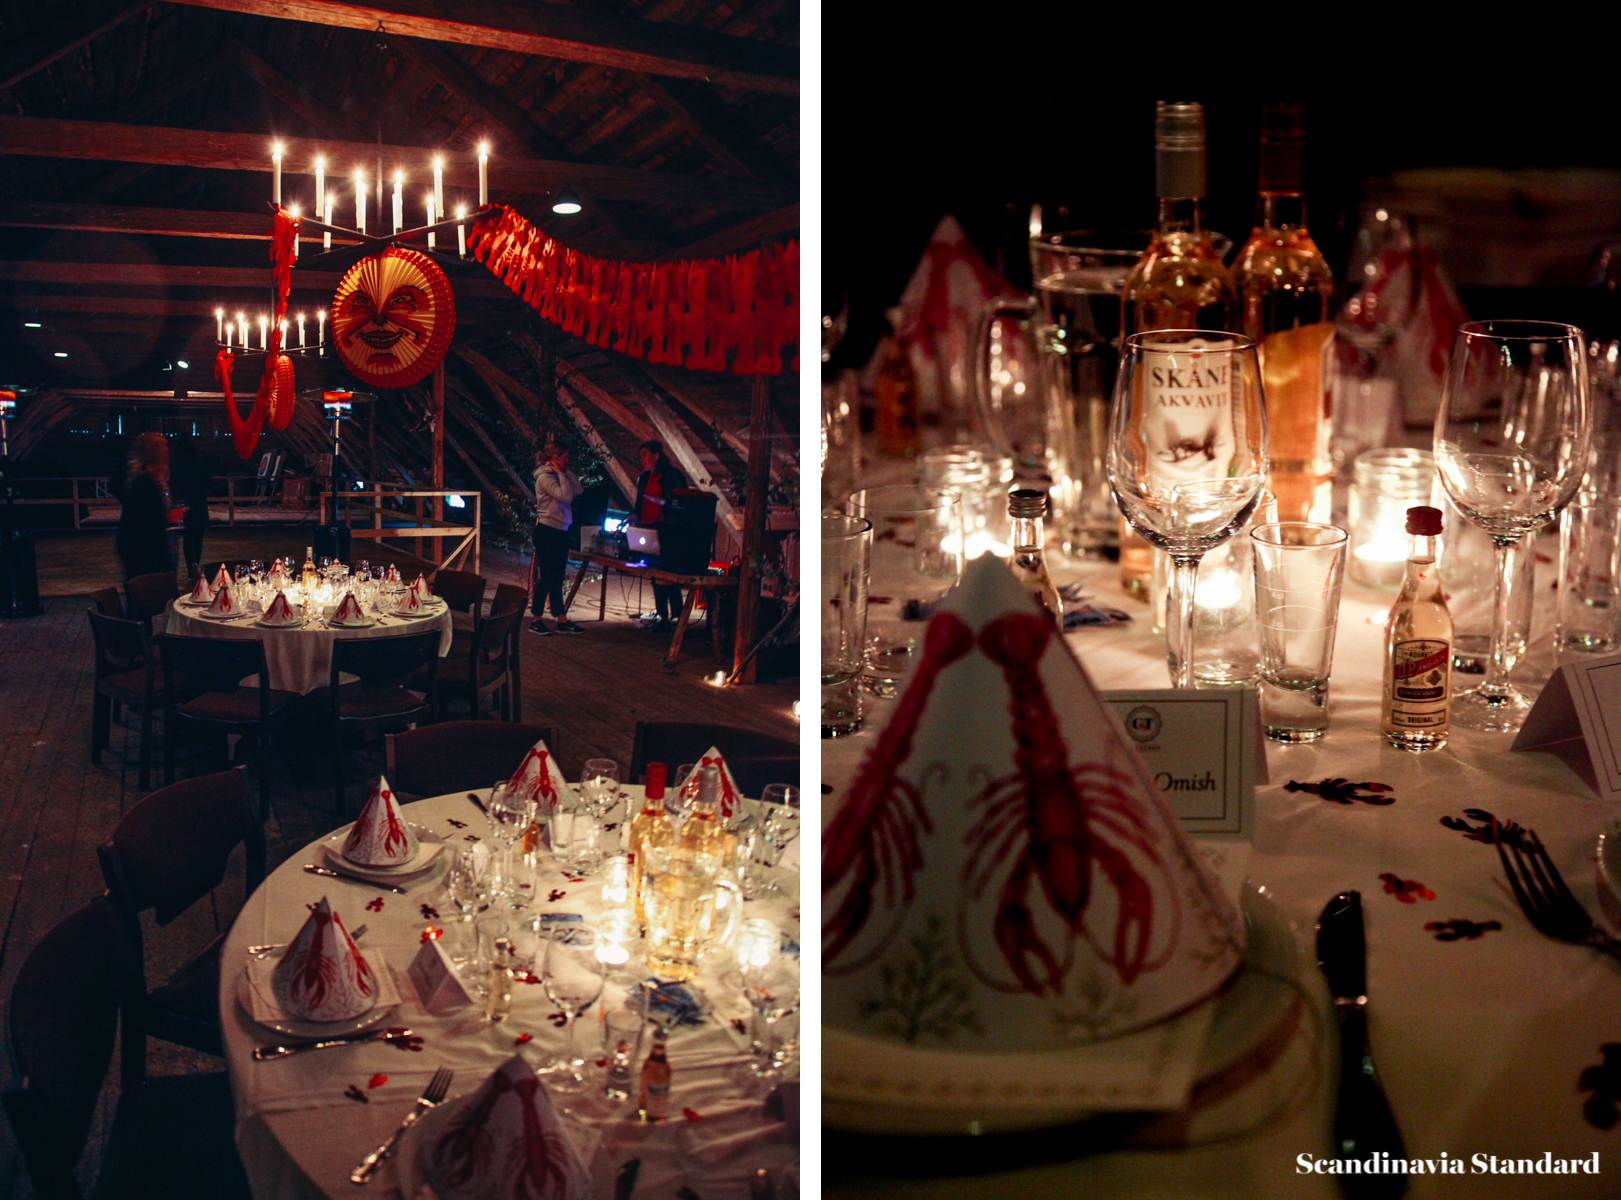 aquavit-and-decorations-at-the-crayfish-party-scandinavia-standard